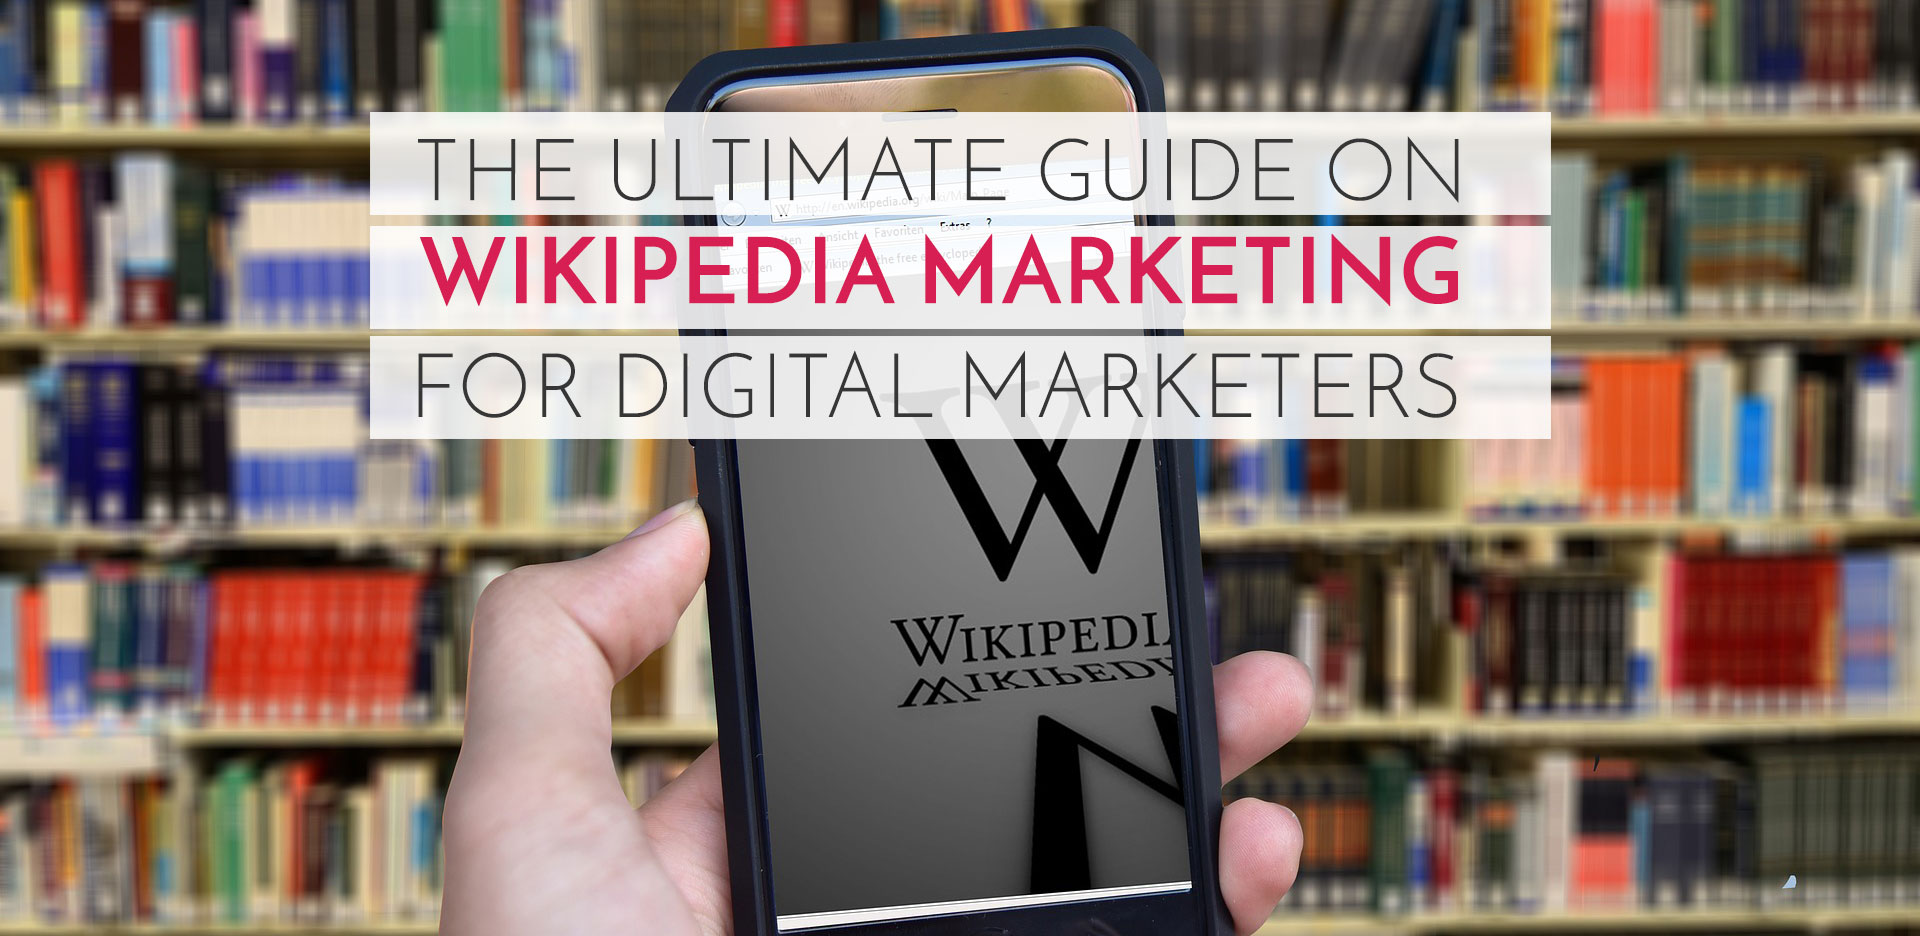 The-ultimate-guide-on-Wikipedia-marketing-for-digital-marketers